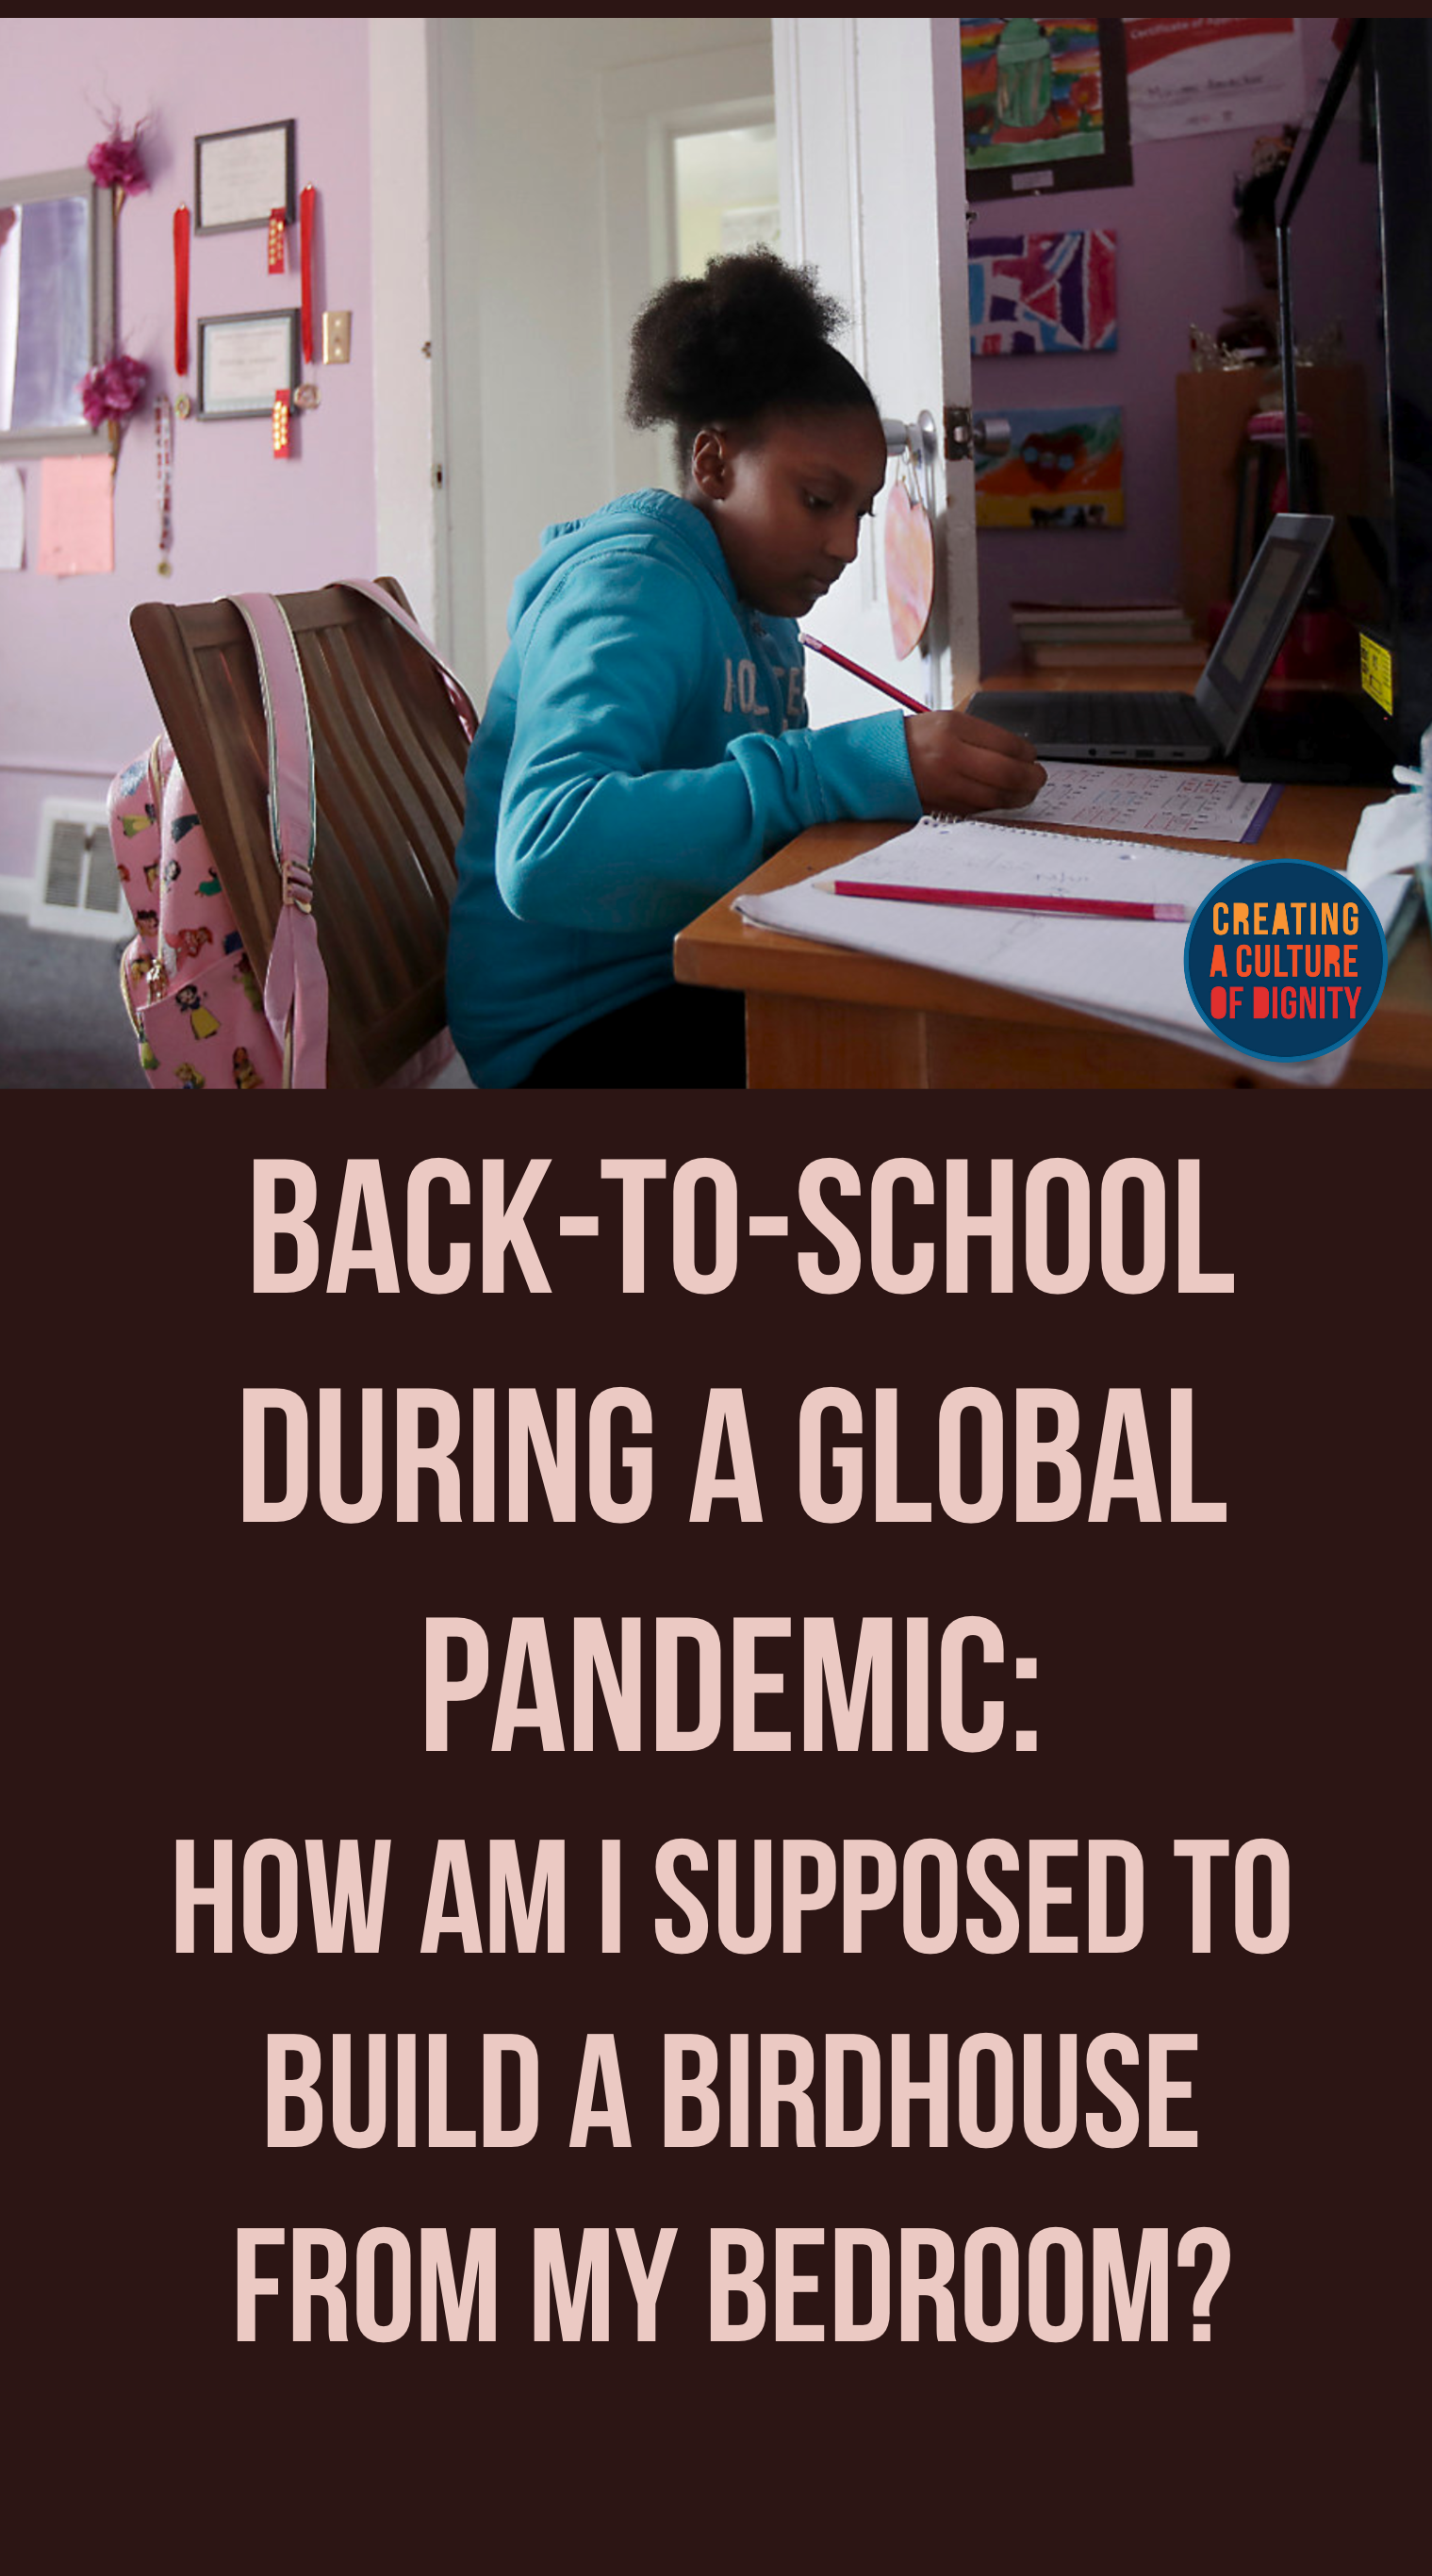 Back-to-School During a Global Pandemic: How am I supposed to build a birdhouse from my bedroom?